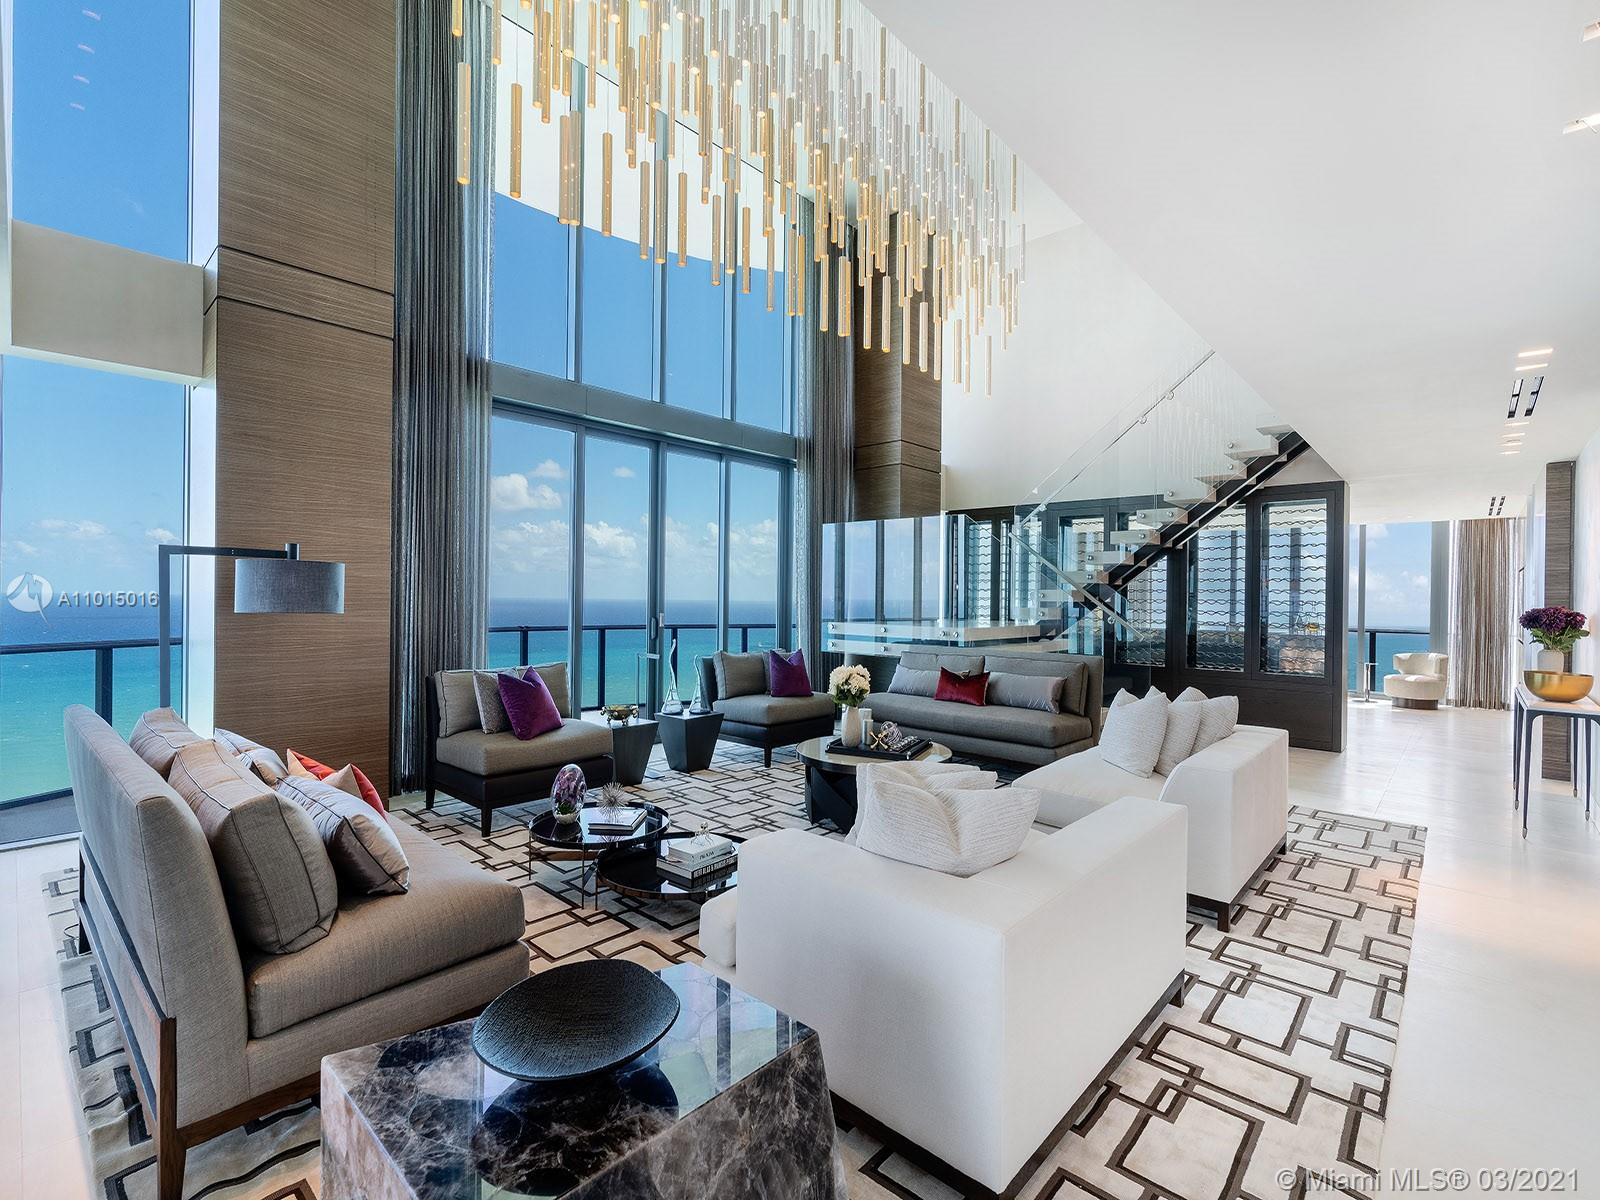 The Penthouse at Regalia Sunny Isles Beach, which spans three floors at a sweeping 16,805 square feet, feels like a private house in the sky, with all the services and amenities of an ultra-luxury oceanfront condominium. The 6-bedroom residence features a variety of living and entertaining areas, from the grand, double-height living room, to the quartz and bronze cocktail bar, game room, theater, and rooftop pool with summer kitchen. The private areas are no less unique, including the massive master bathroom with connecting private spa equipped with sauna and steam rooms, and the guest living room. A private elevator links all three floors. Outside, undulating terraces wrap a full uninterrupted 360 degrees on the first and third levels, with a partial terrace on the second.